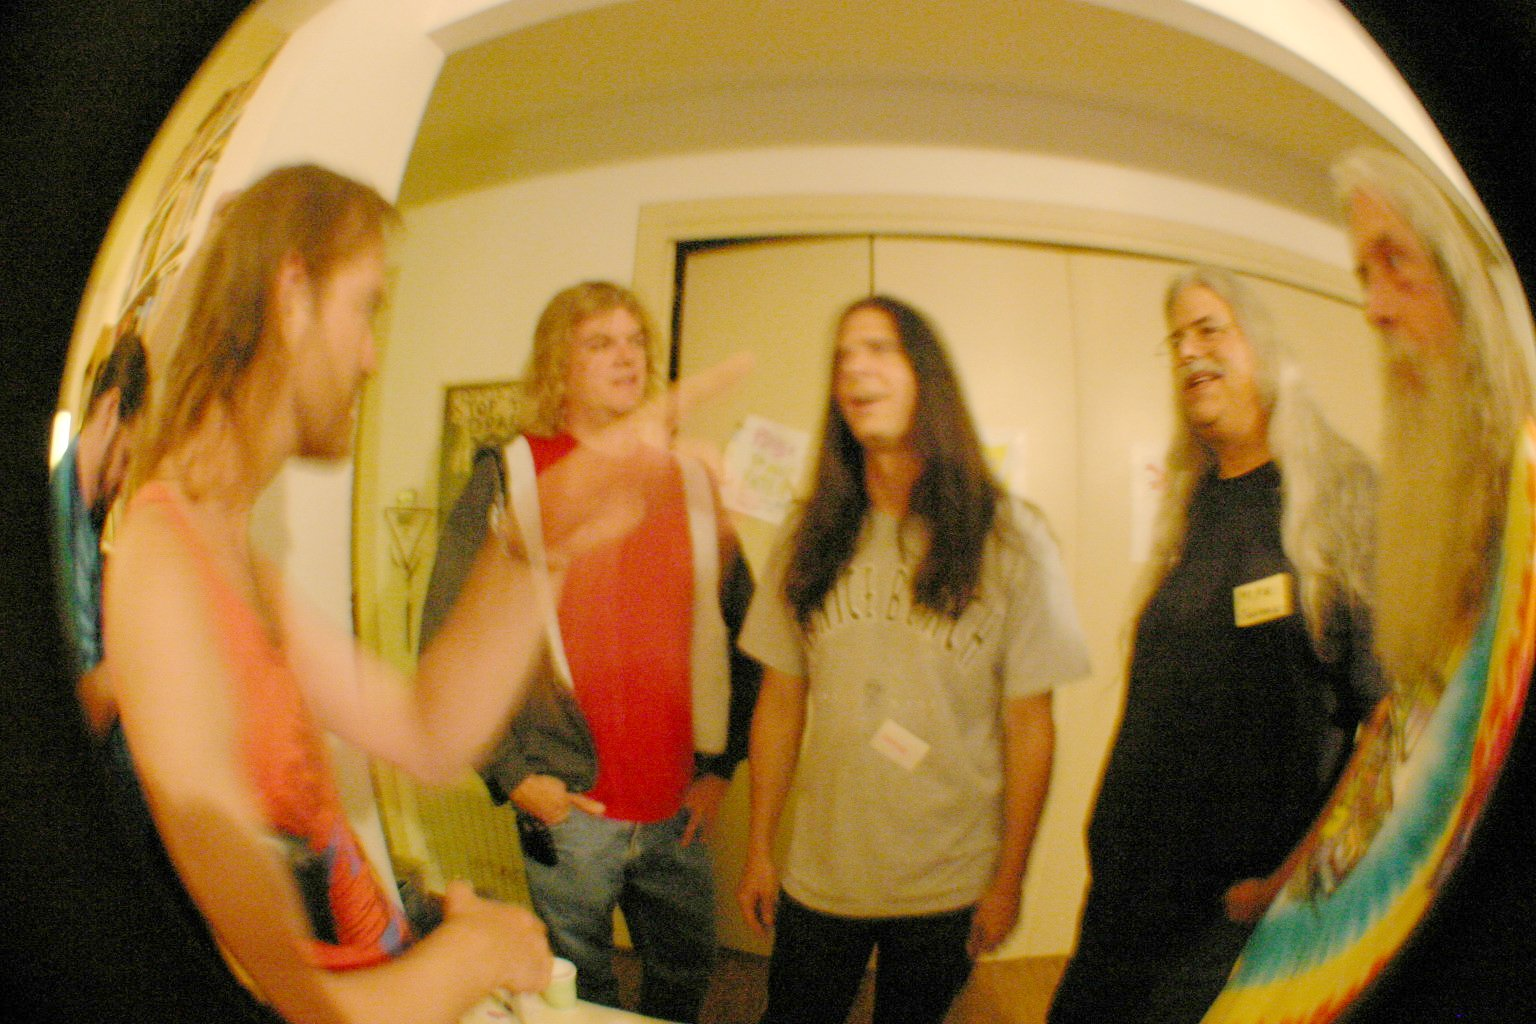 Stardust Hand Disappears While Talking With Matt David Mike and Bill